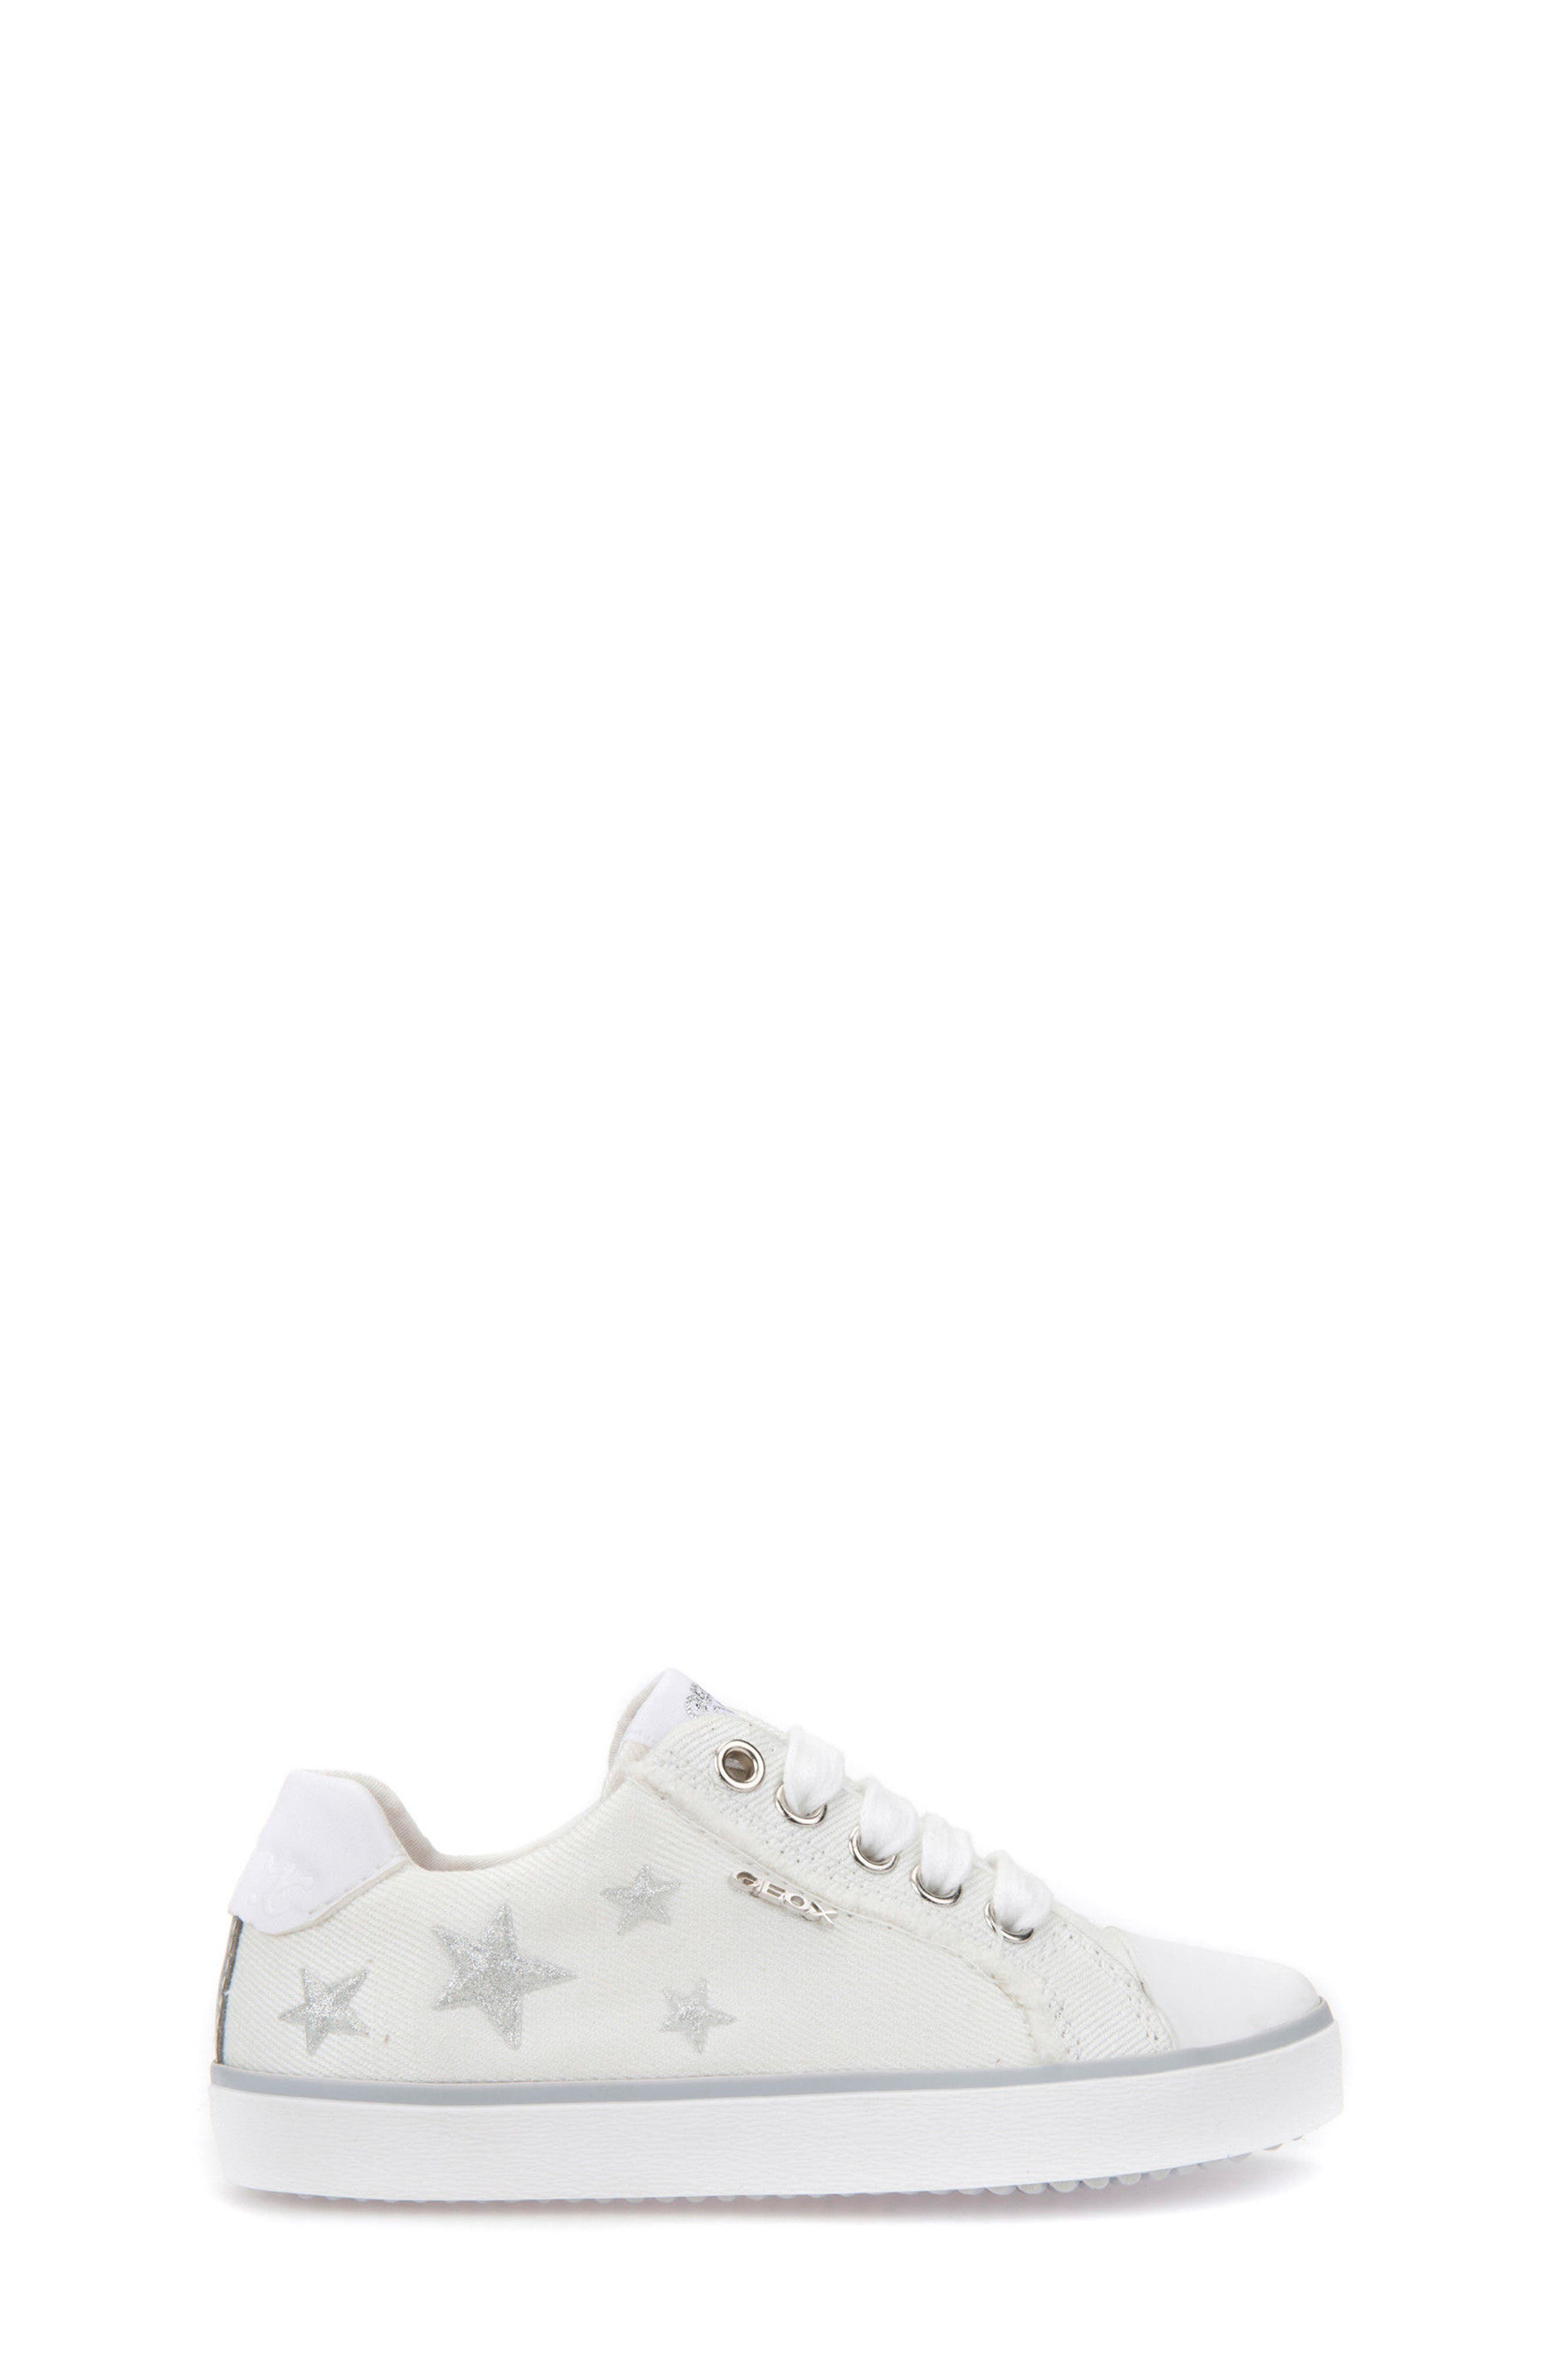 Kilwi Low Top Sneaker,                             Alternate thumbnail 3, color,                             WHITE